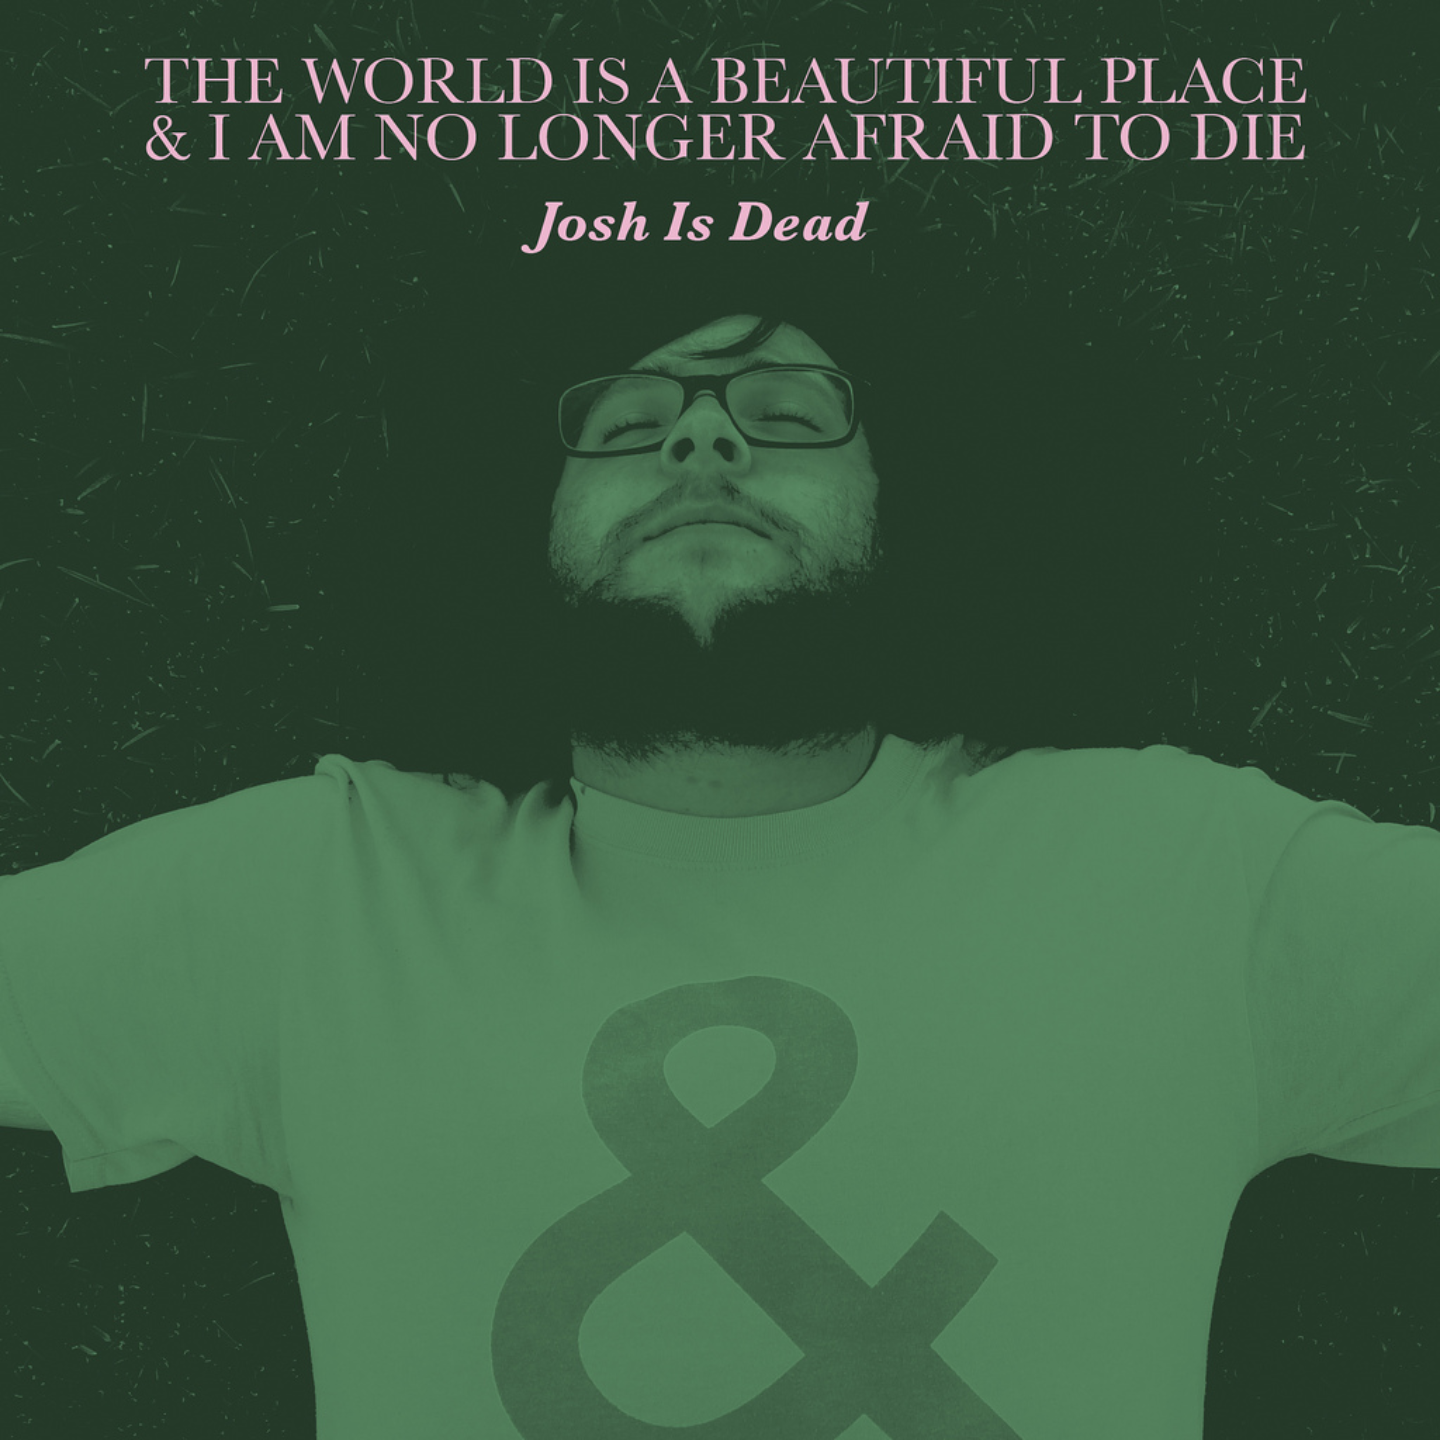 """THE WORLD IS A BEAUTIFUL PLACE & I AM NO LONGER AFRAID TO DIE - Josh Is Dead 7"""""""